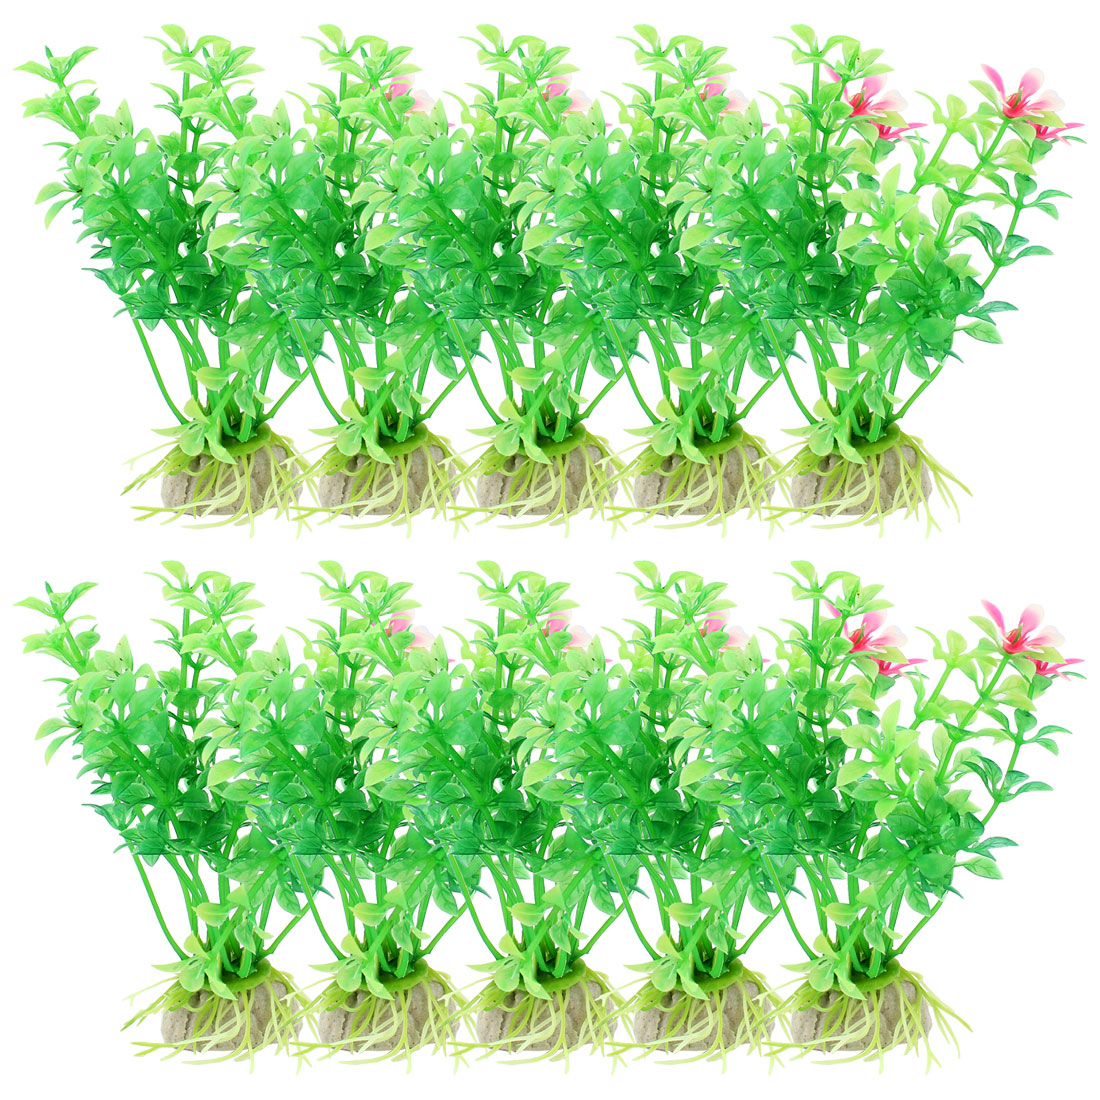 "10 Pcs 4.3"" Height Ceramic Base Plastic Plants Grass Green For Fish Tank"